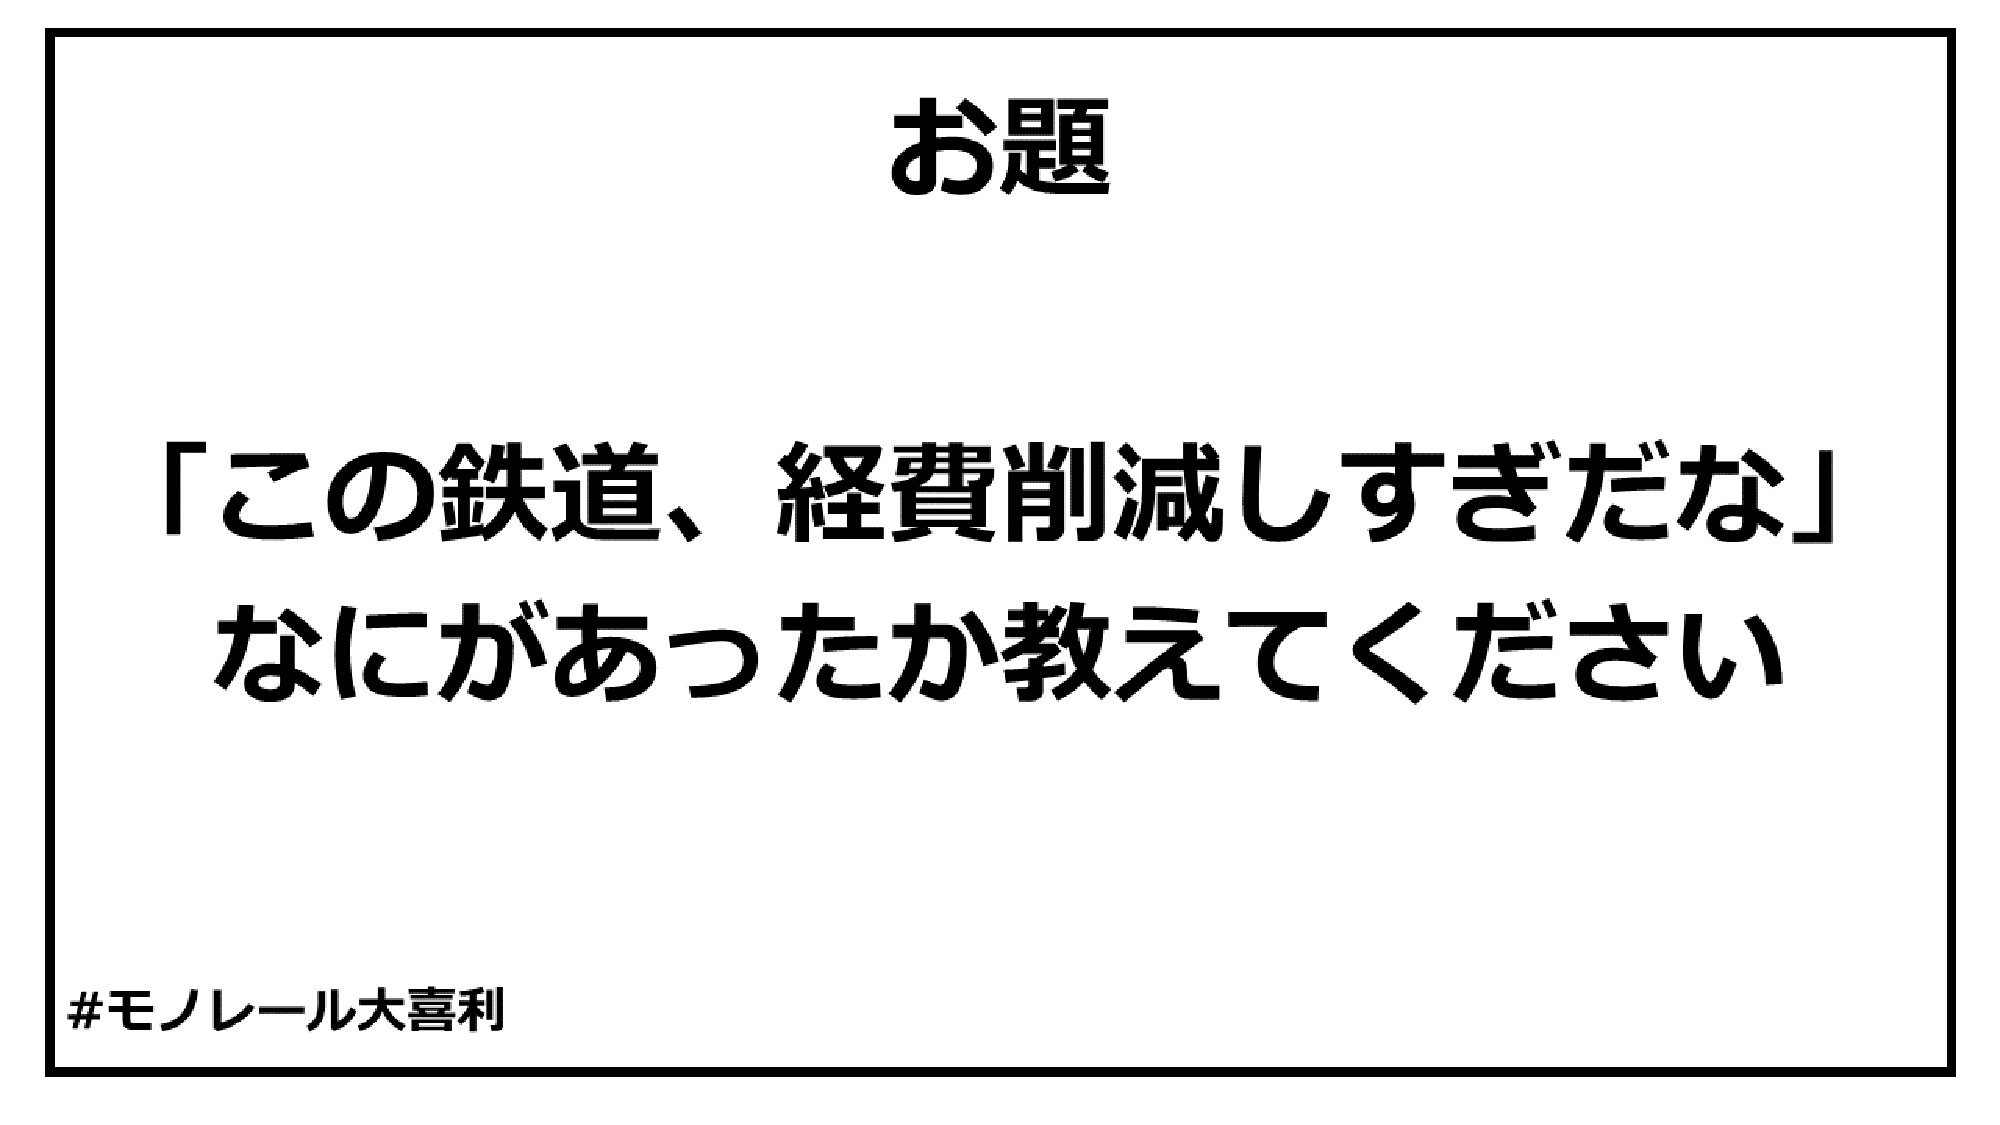 ogiri_answer_28_1.jpg